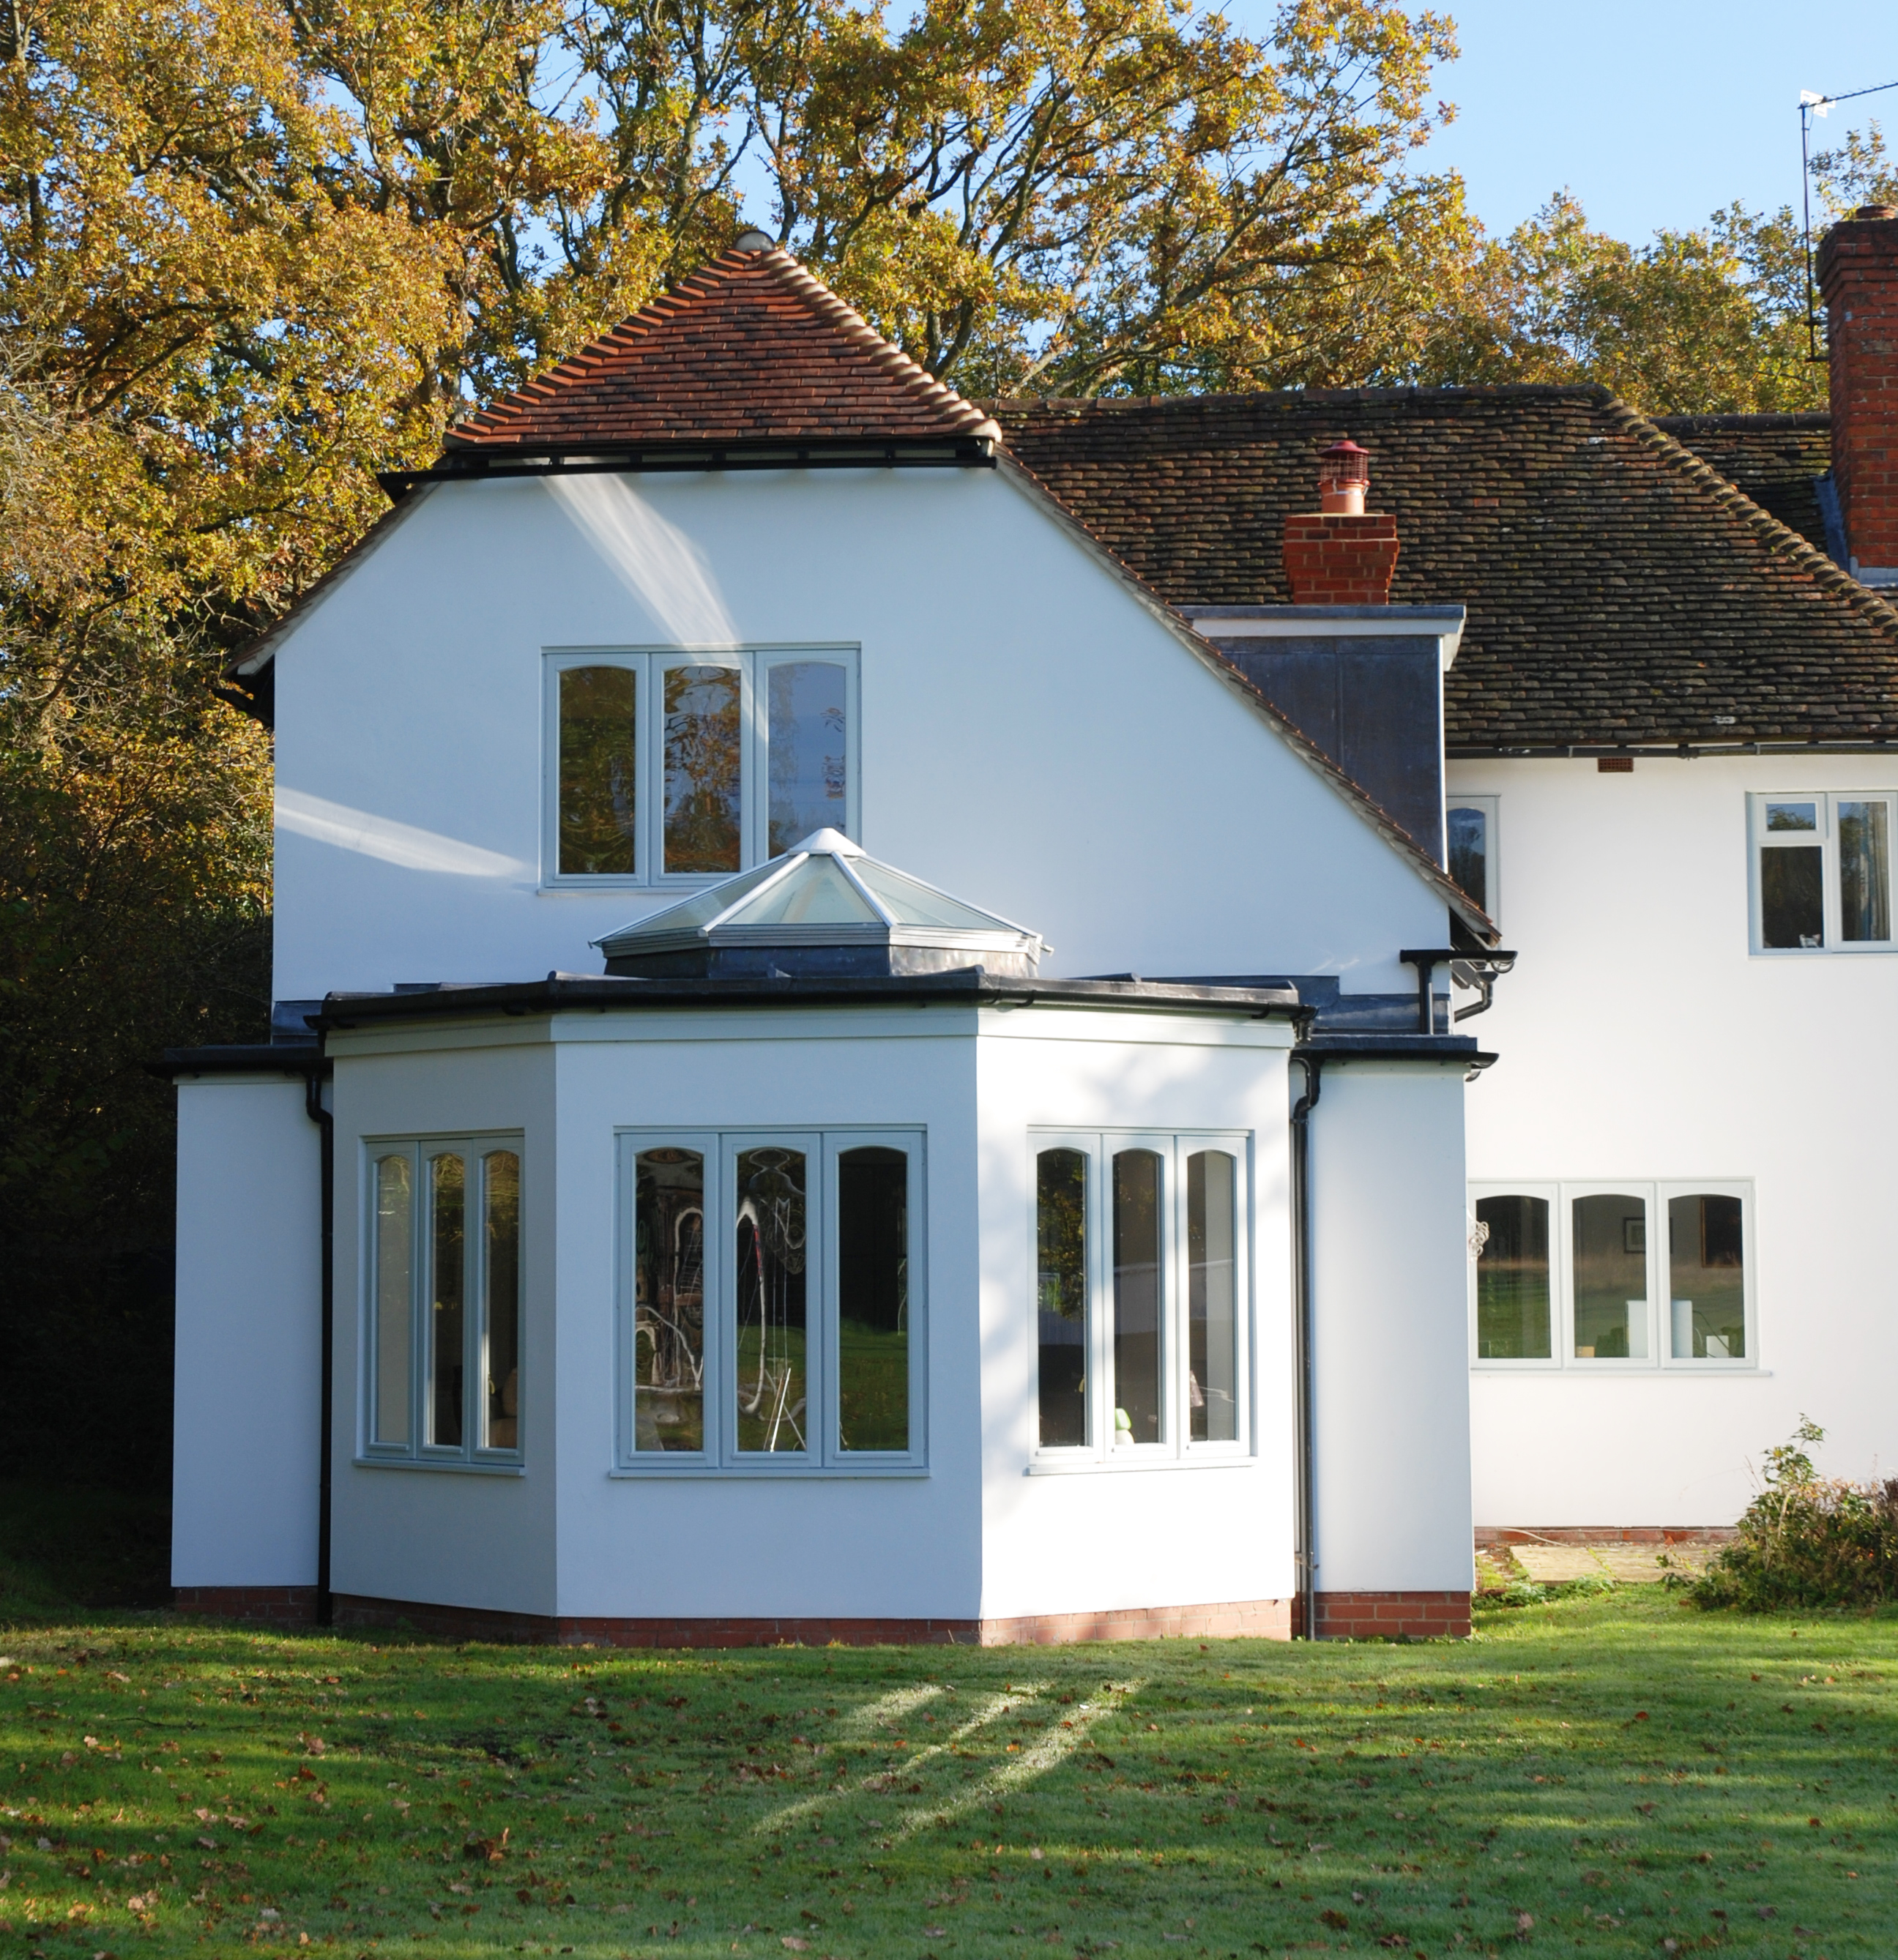 Home extensions design by Inspiration Architects. An extension was added to the front creating a large hall space with an open fire, and is orientated such that full views of the grounds to the rear of the house are revealed.